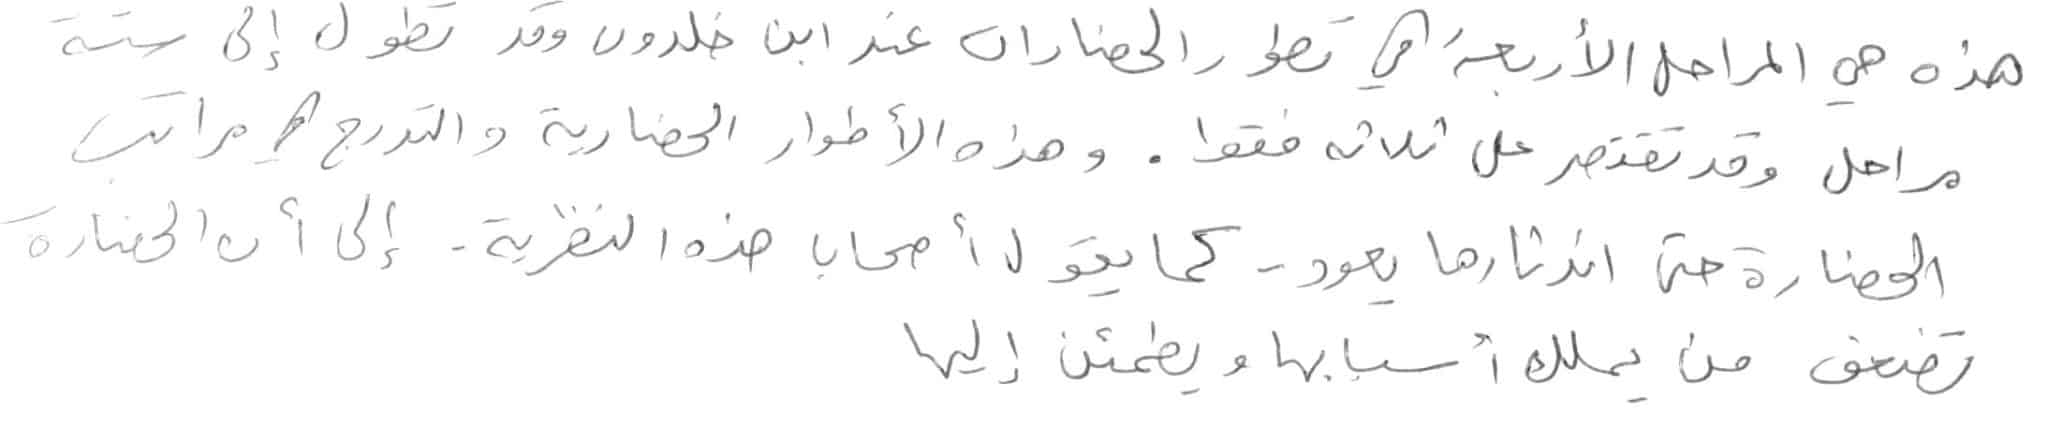 arabic-handwriting-09